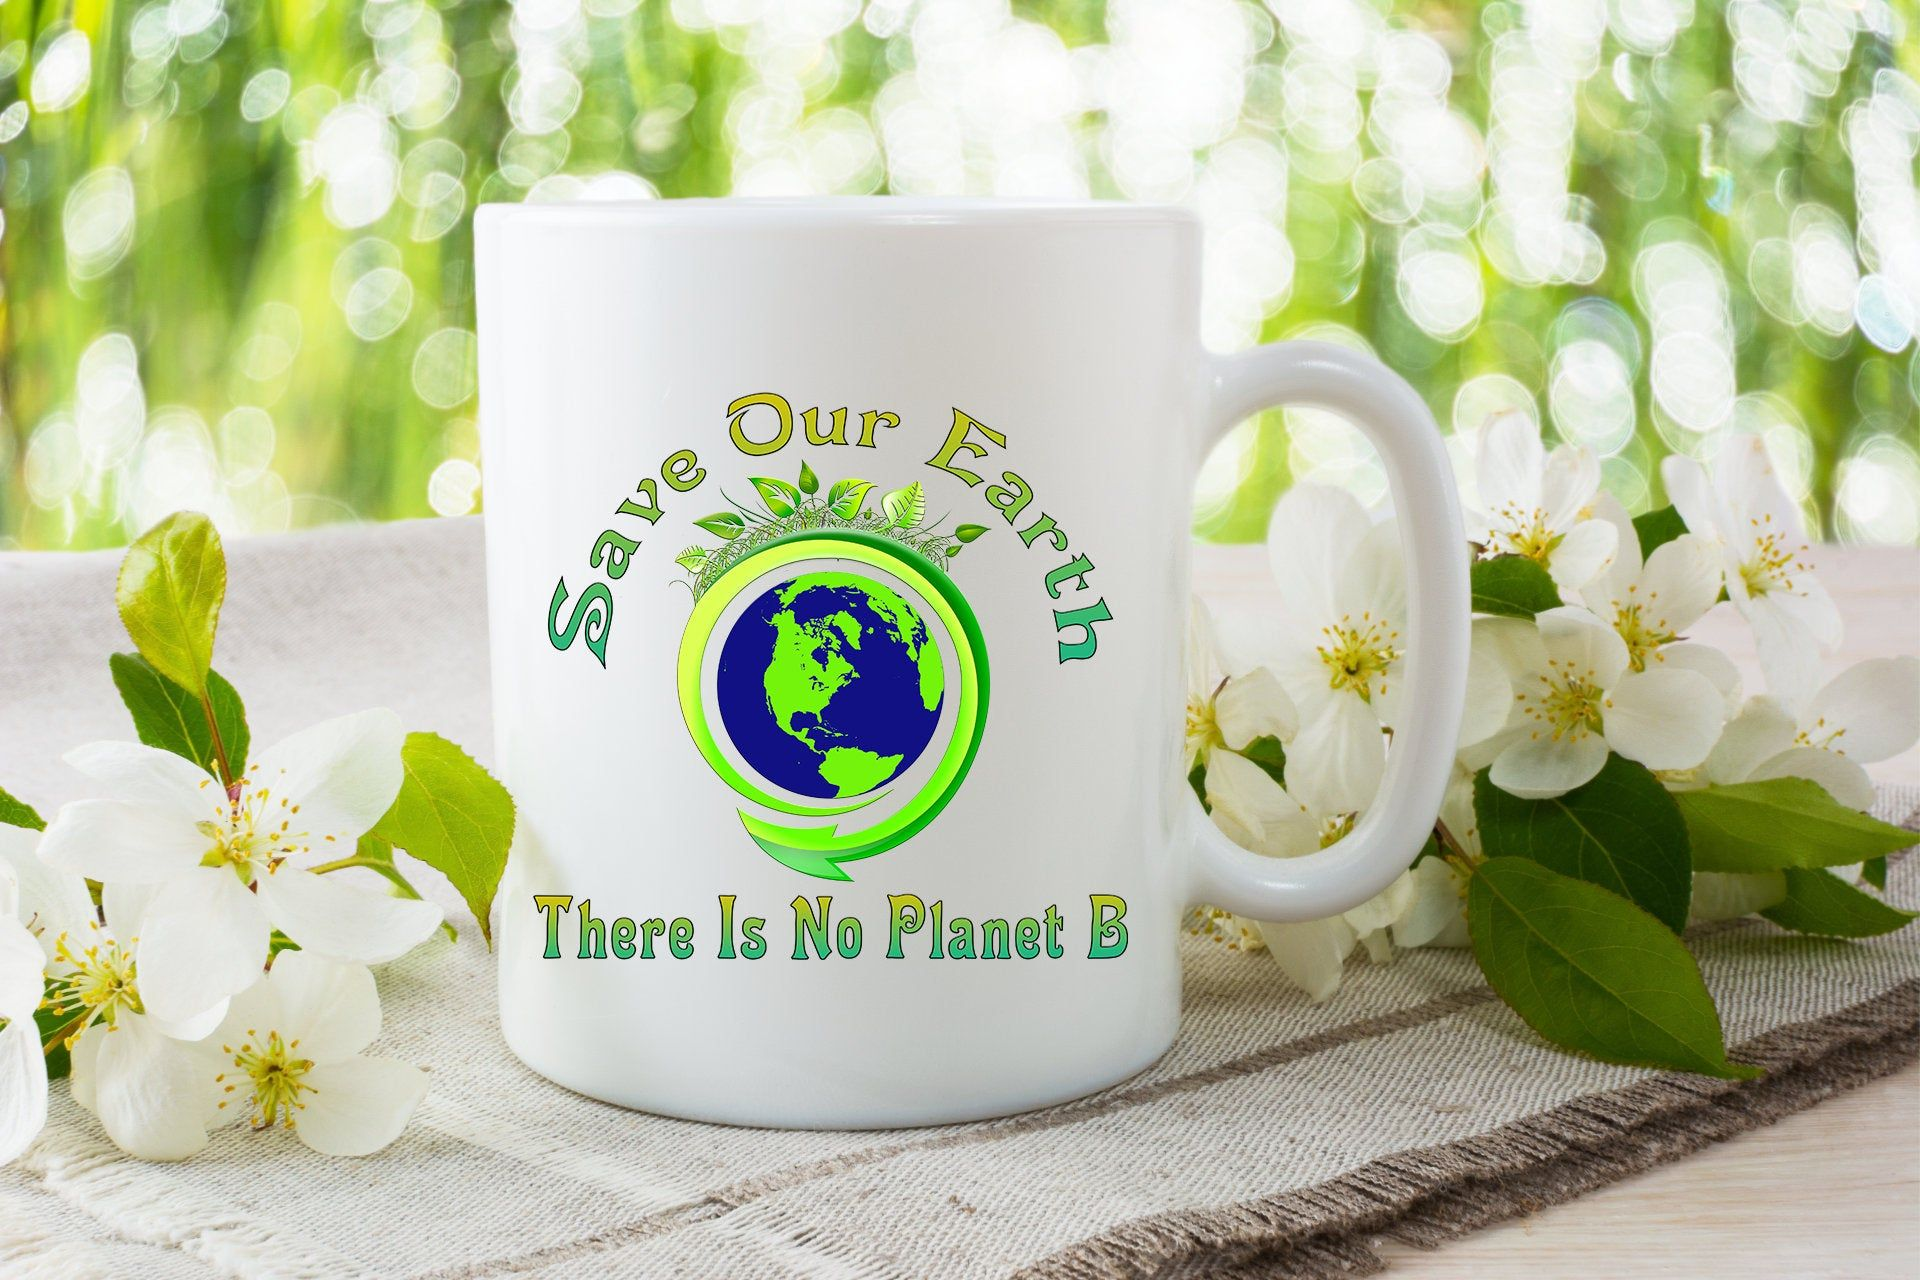 Save Our Earth There Is No Planet B Coffee Mug Earth Day Etsy Green Mugs Save Our Earth Go Green